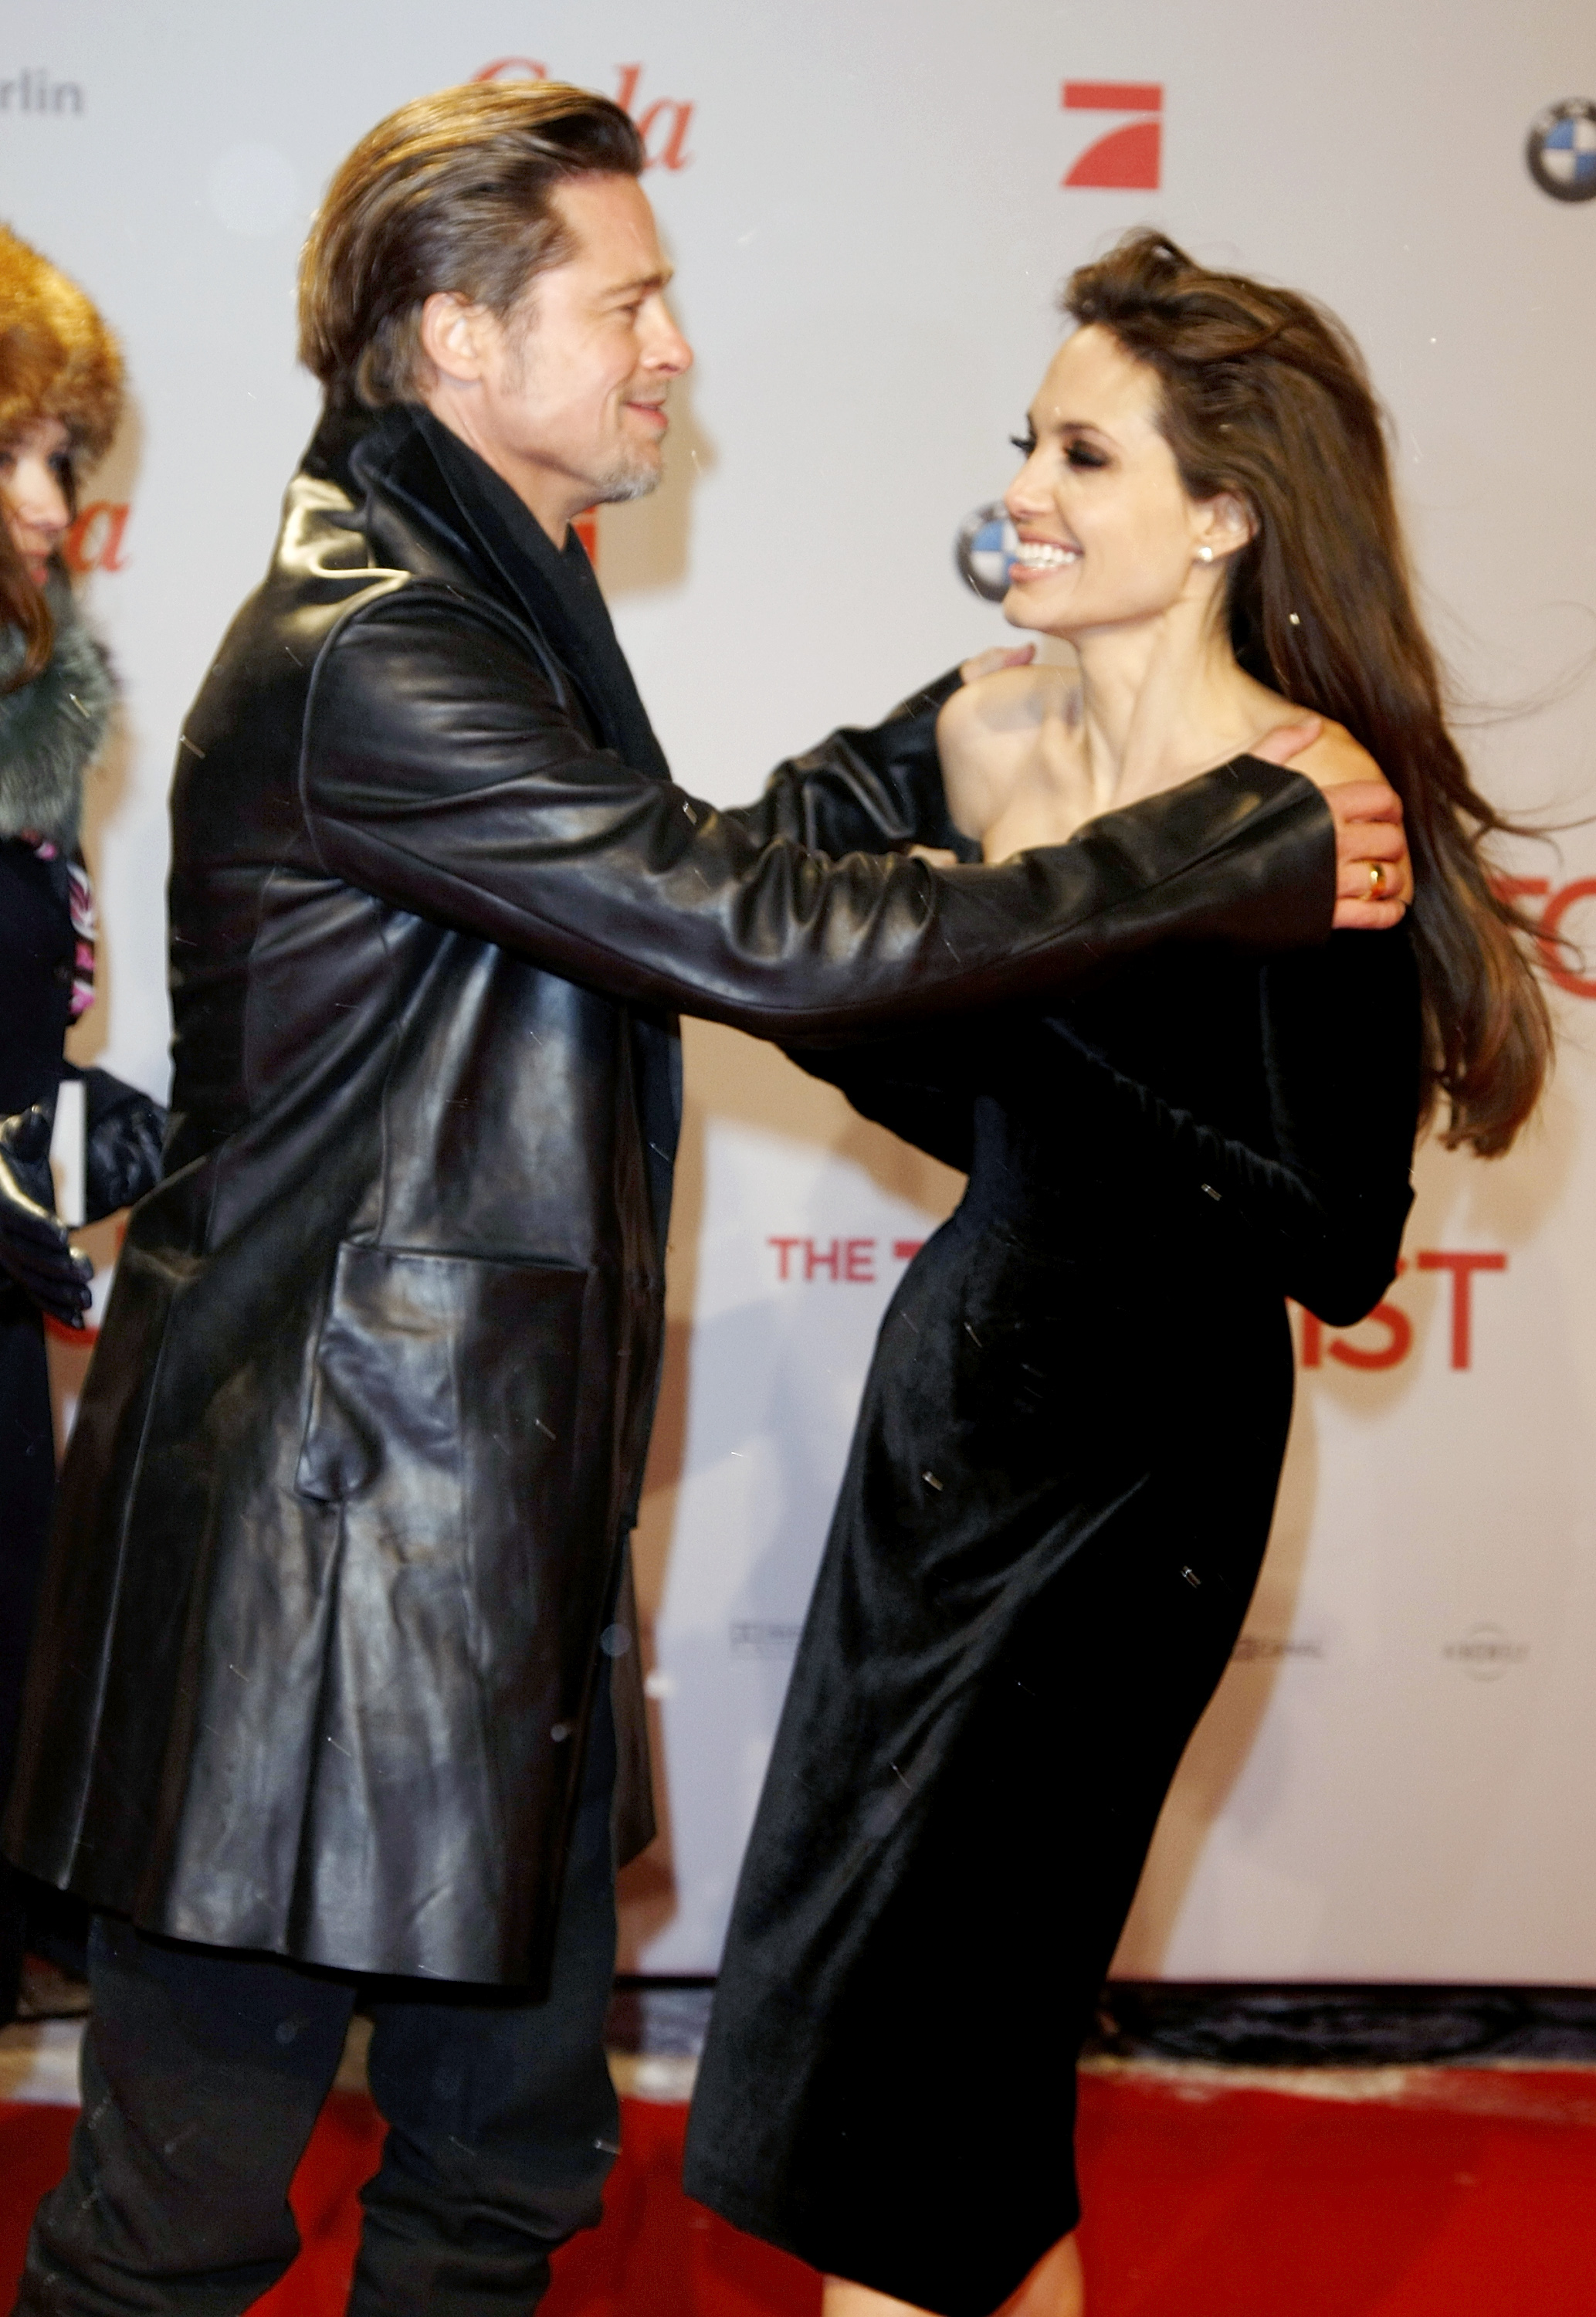 Brad Pitt warmed Angelina Jolie up at her December 2010 German premiere of The Tourist.